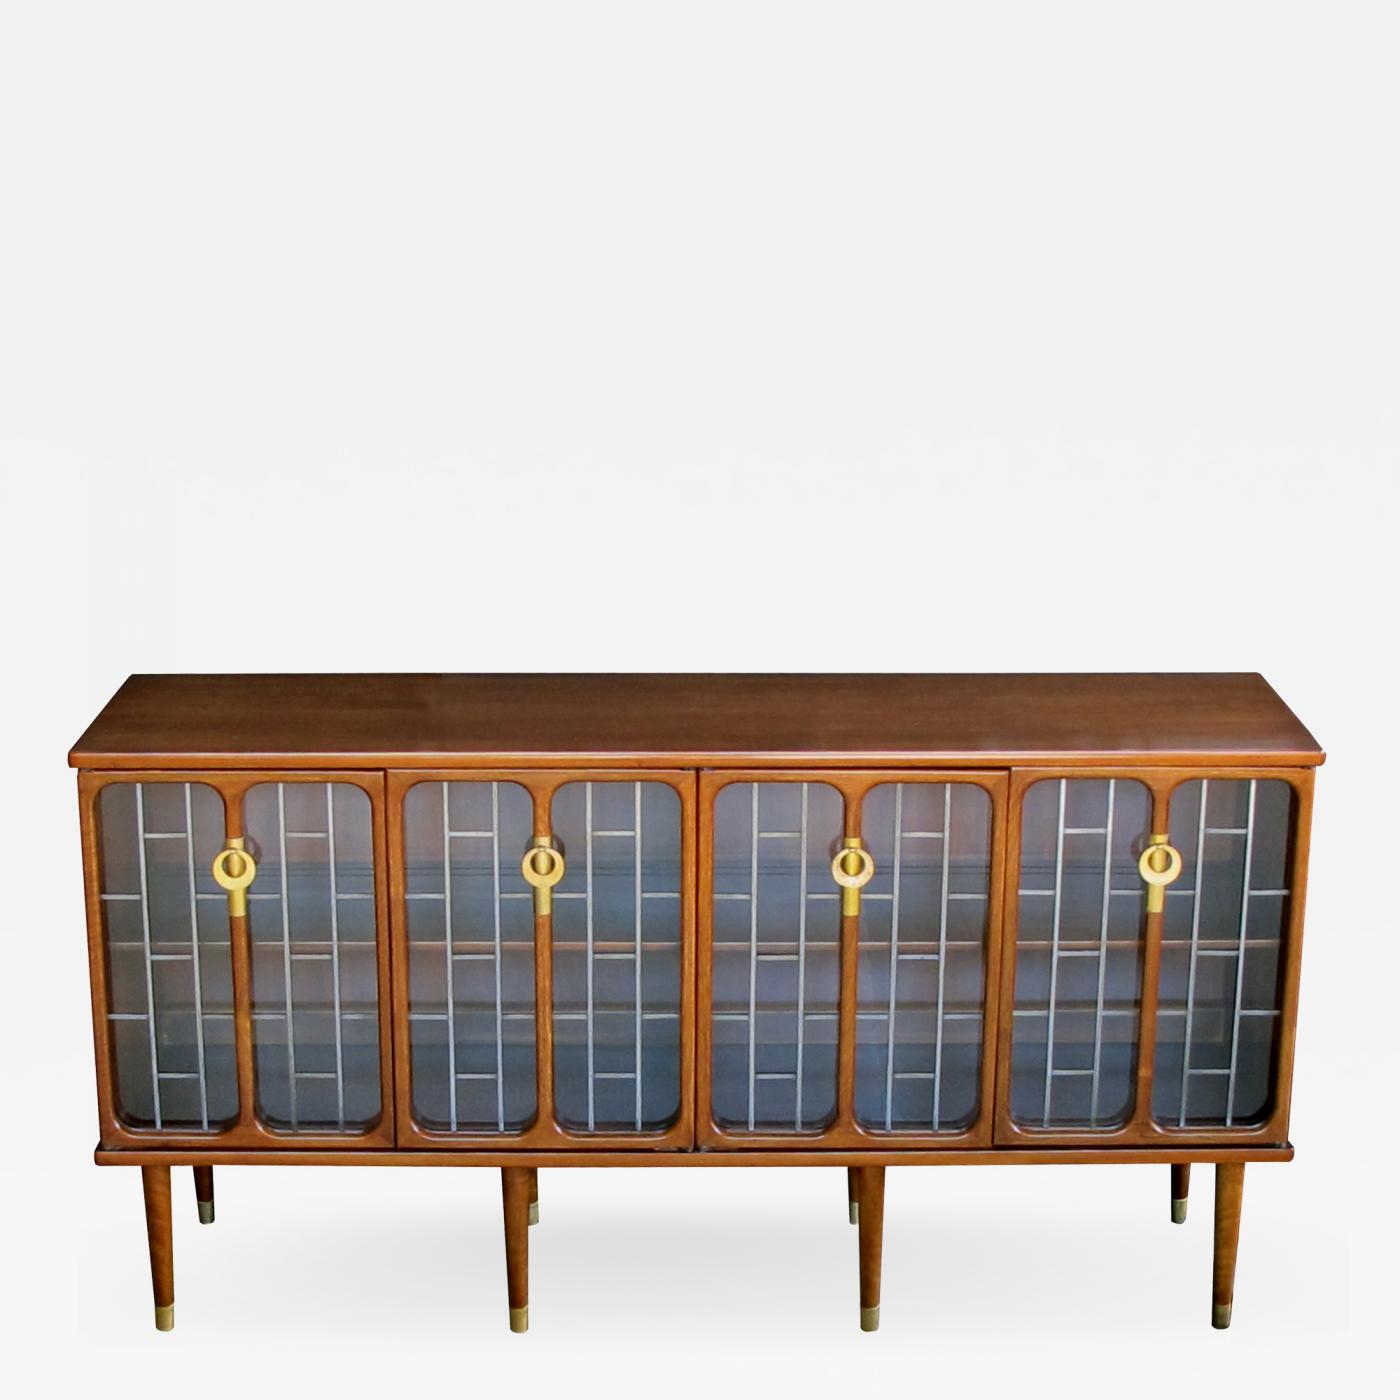 White Furniture Company A Sophisticated American Mid Century Modern Walnut 4 Door Credenza